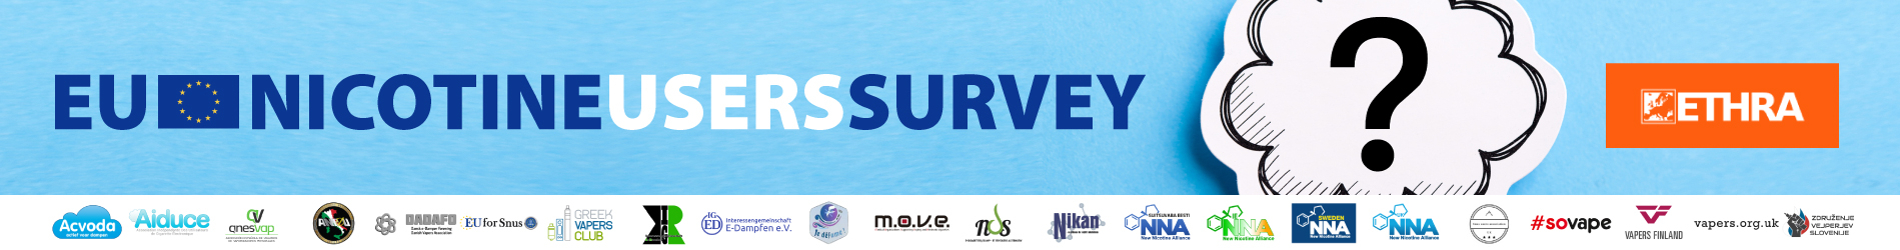 ETHRA survey banner